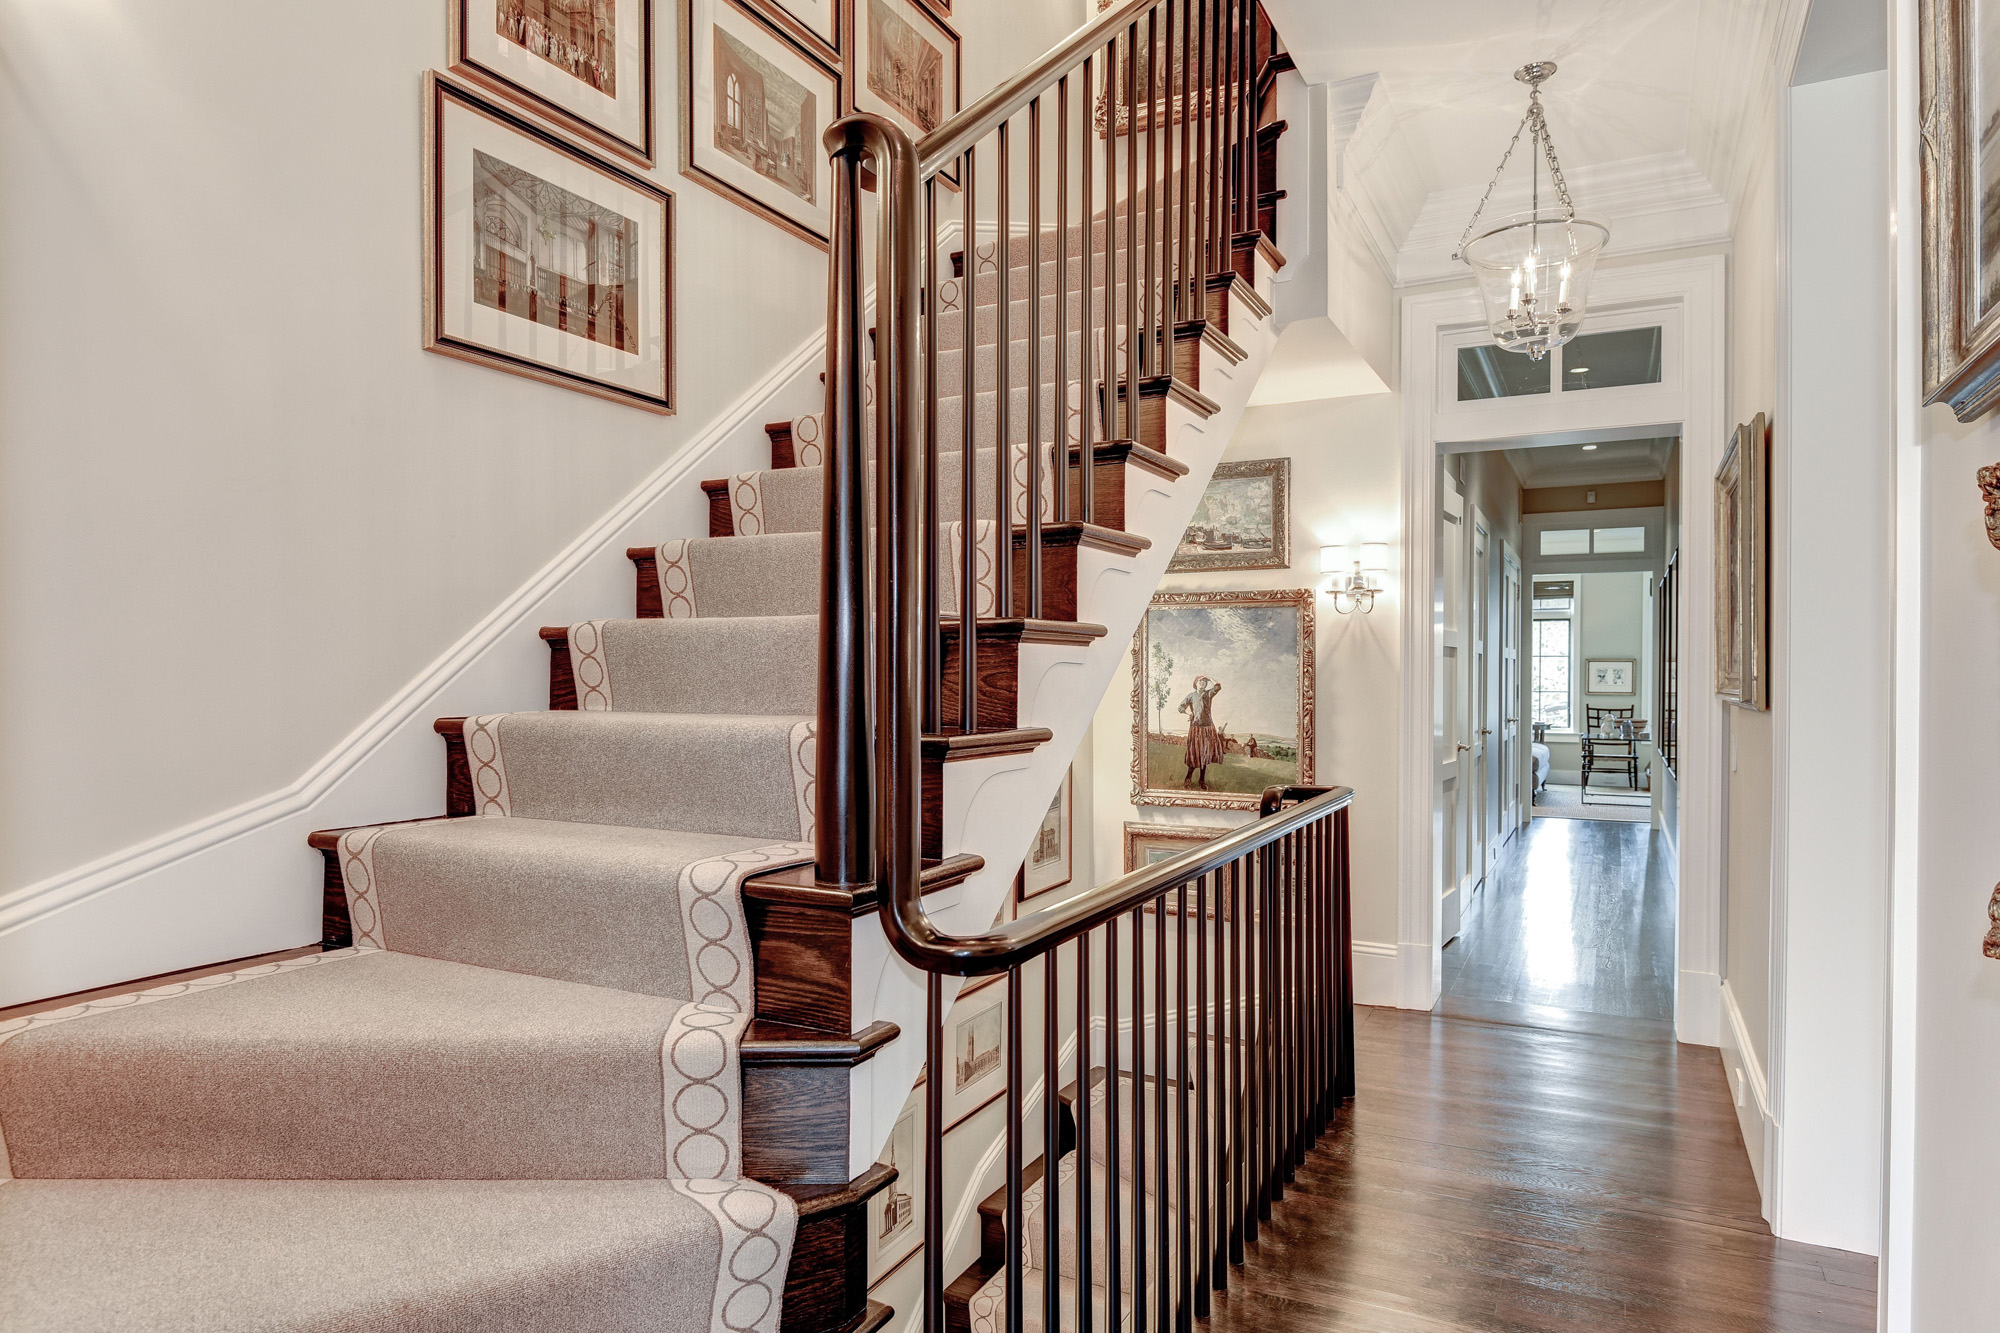 Foyer Staircase Questions : Family foyers entryways stairs photo gallery bowa